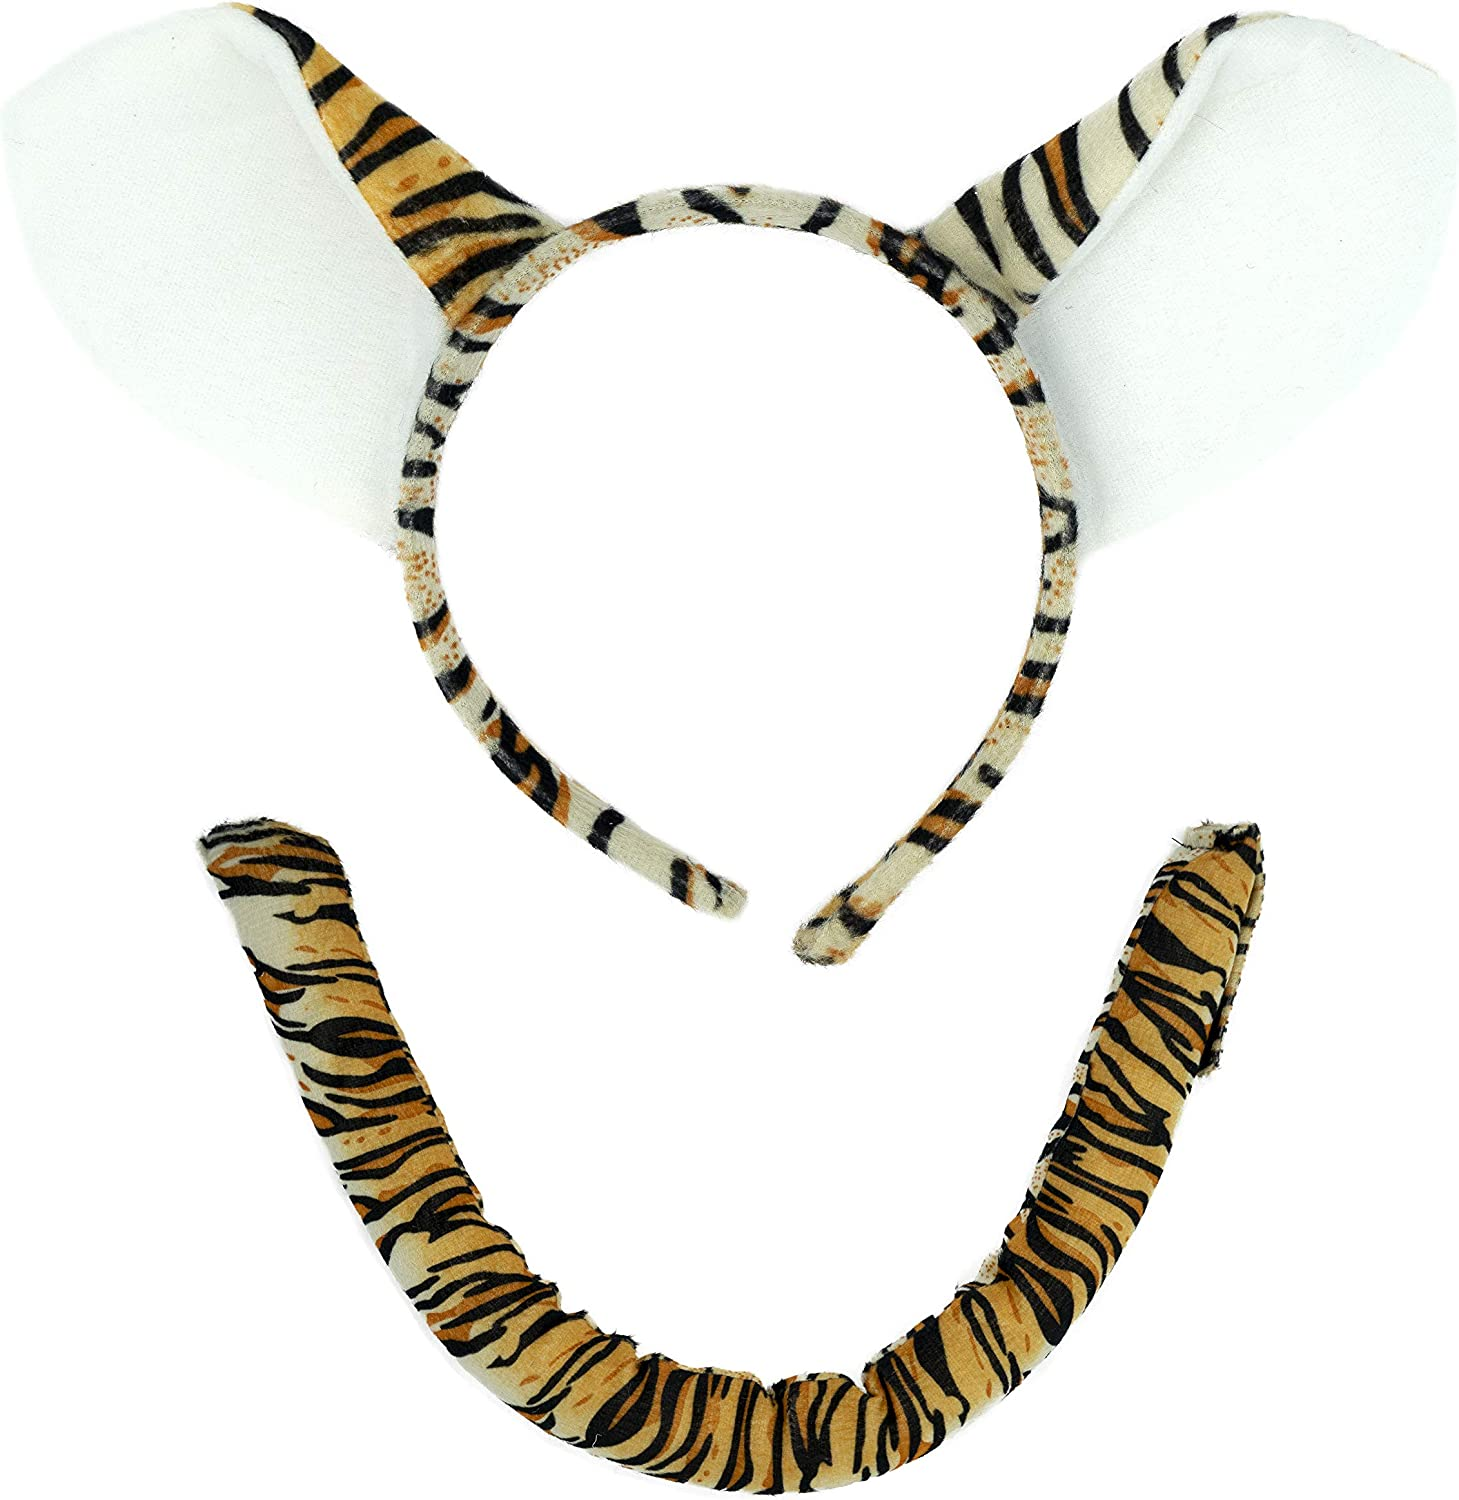 Tiger Headband Ears and Tail Costume Accessory Set - Fits Adults and Kids